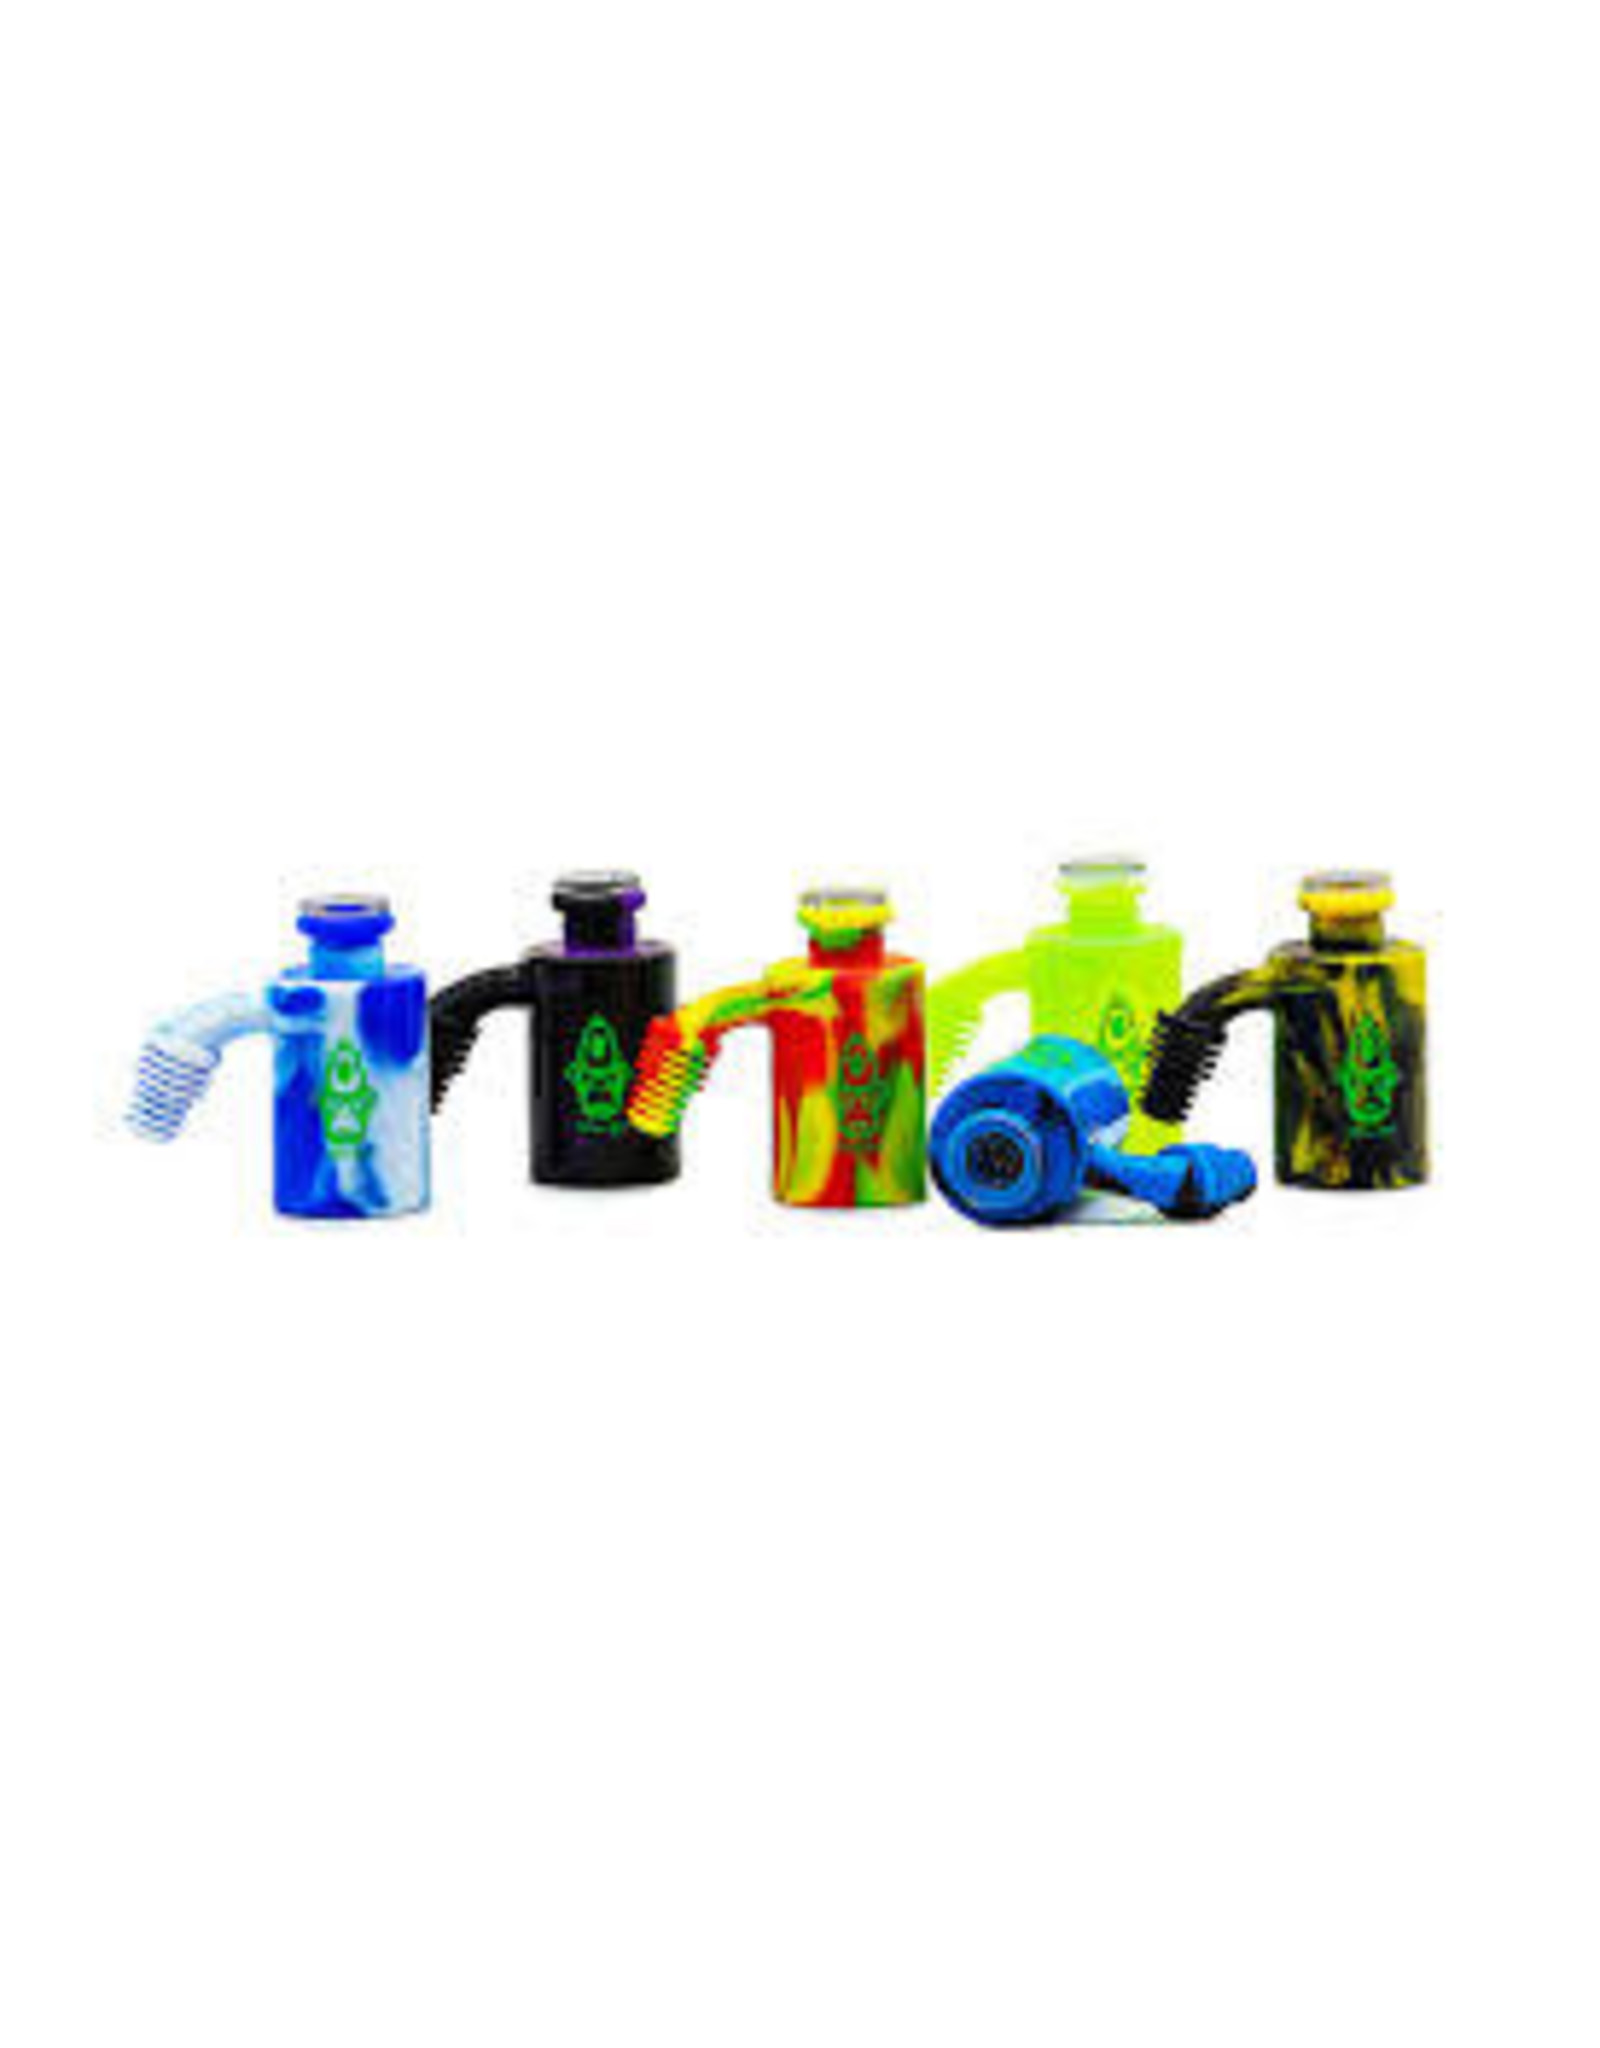 Alien Ape Silicone Ash Catcher/Reclaimer/Storage Jar(12pcs/Display)